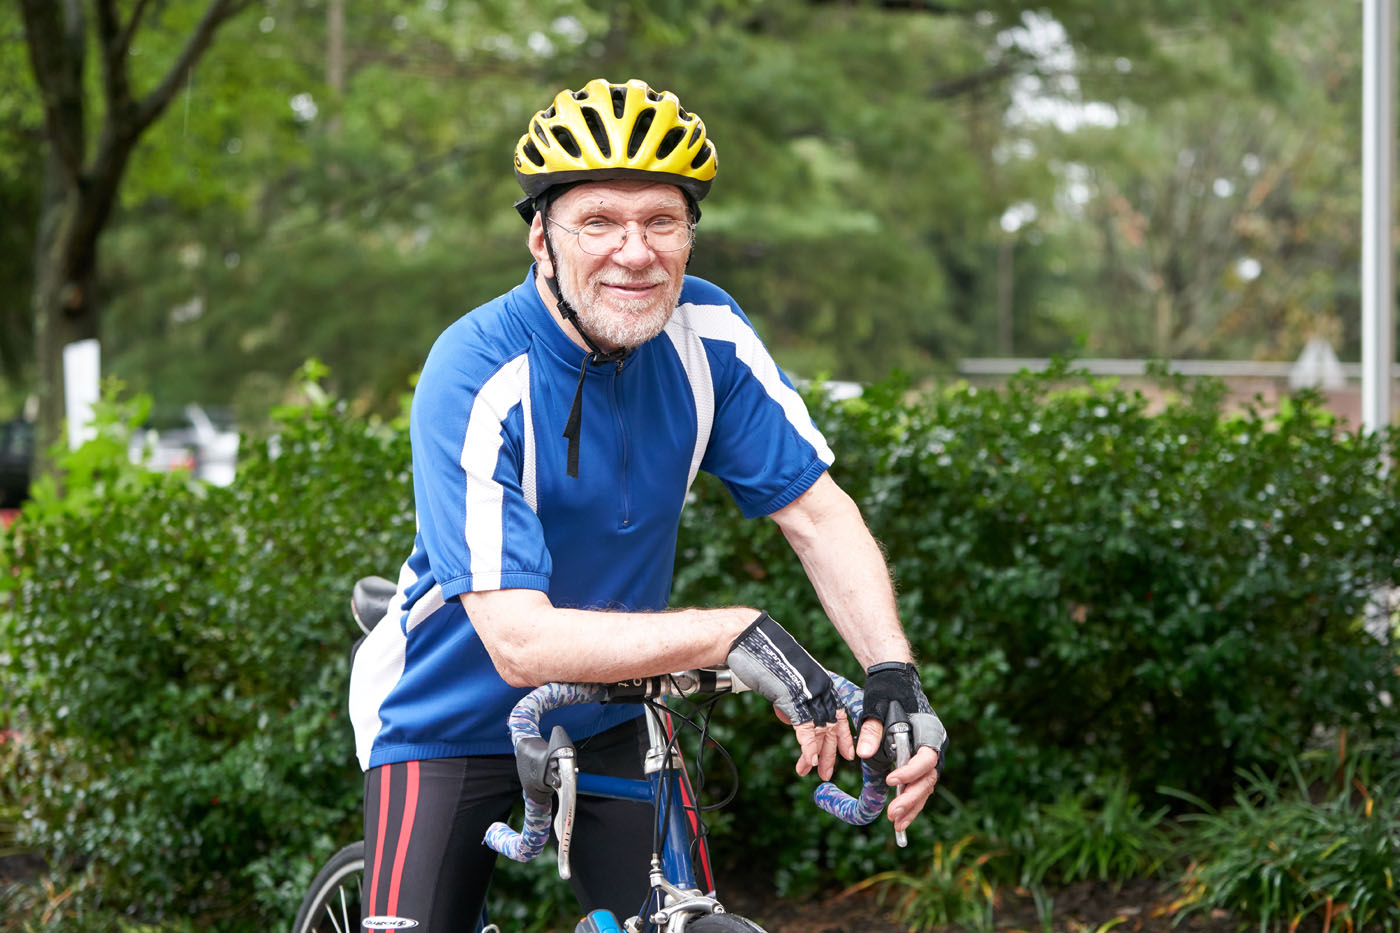 senior independent living enjoyment in columbia md such as Bicycling